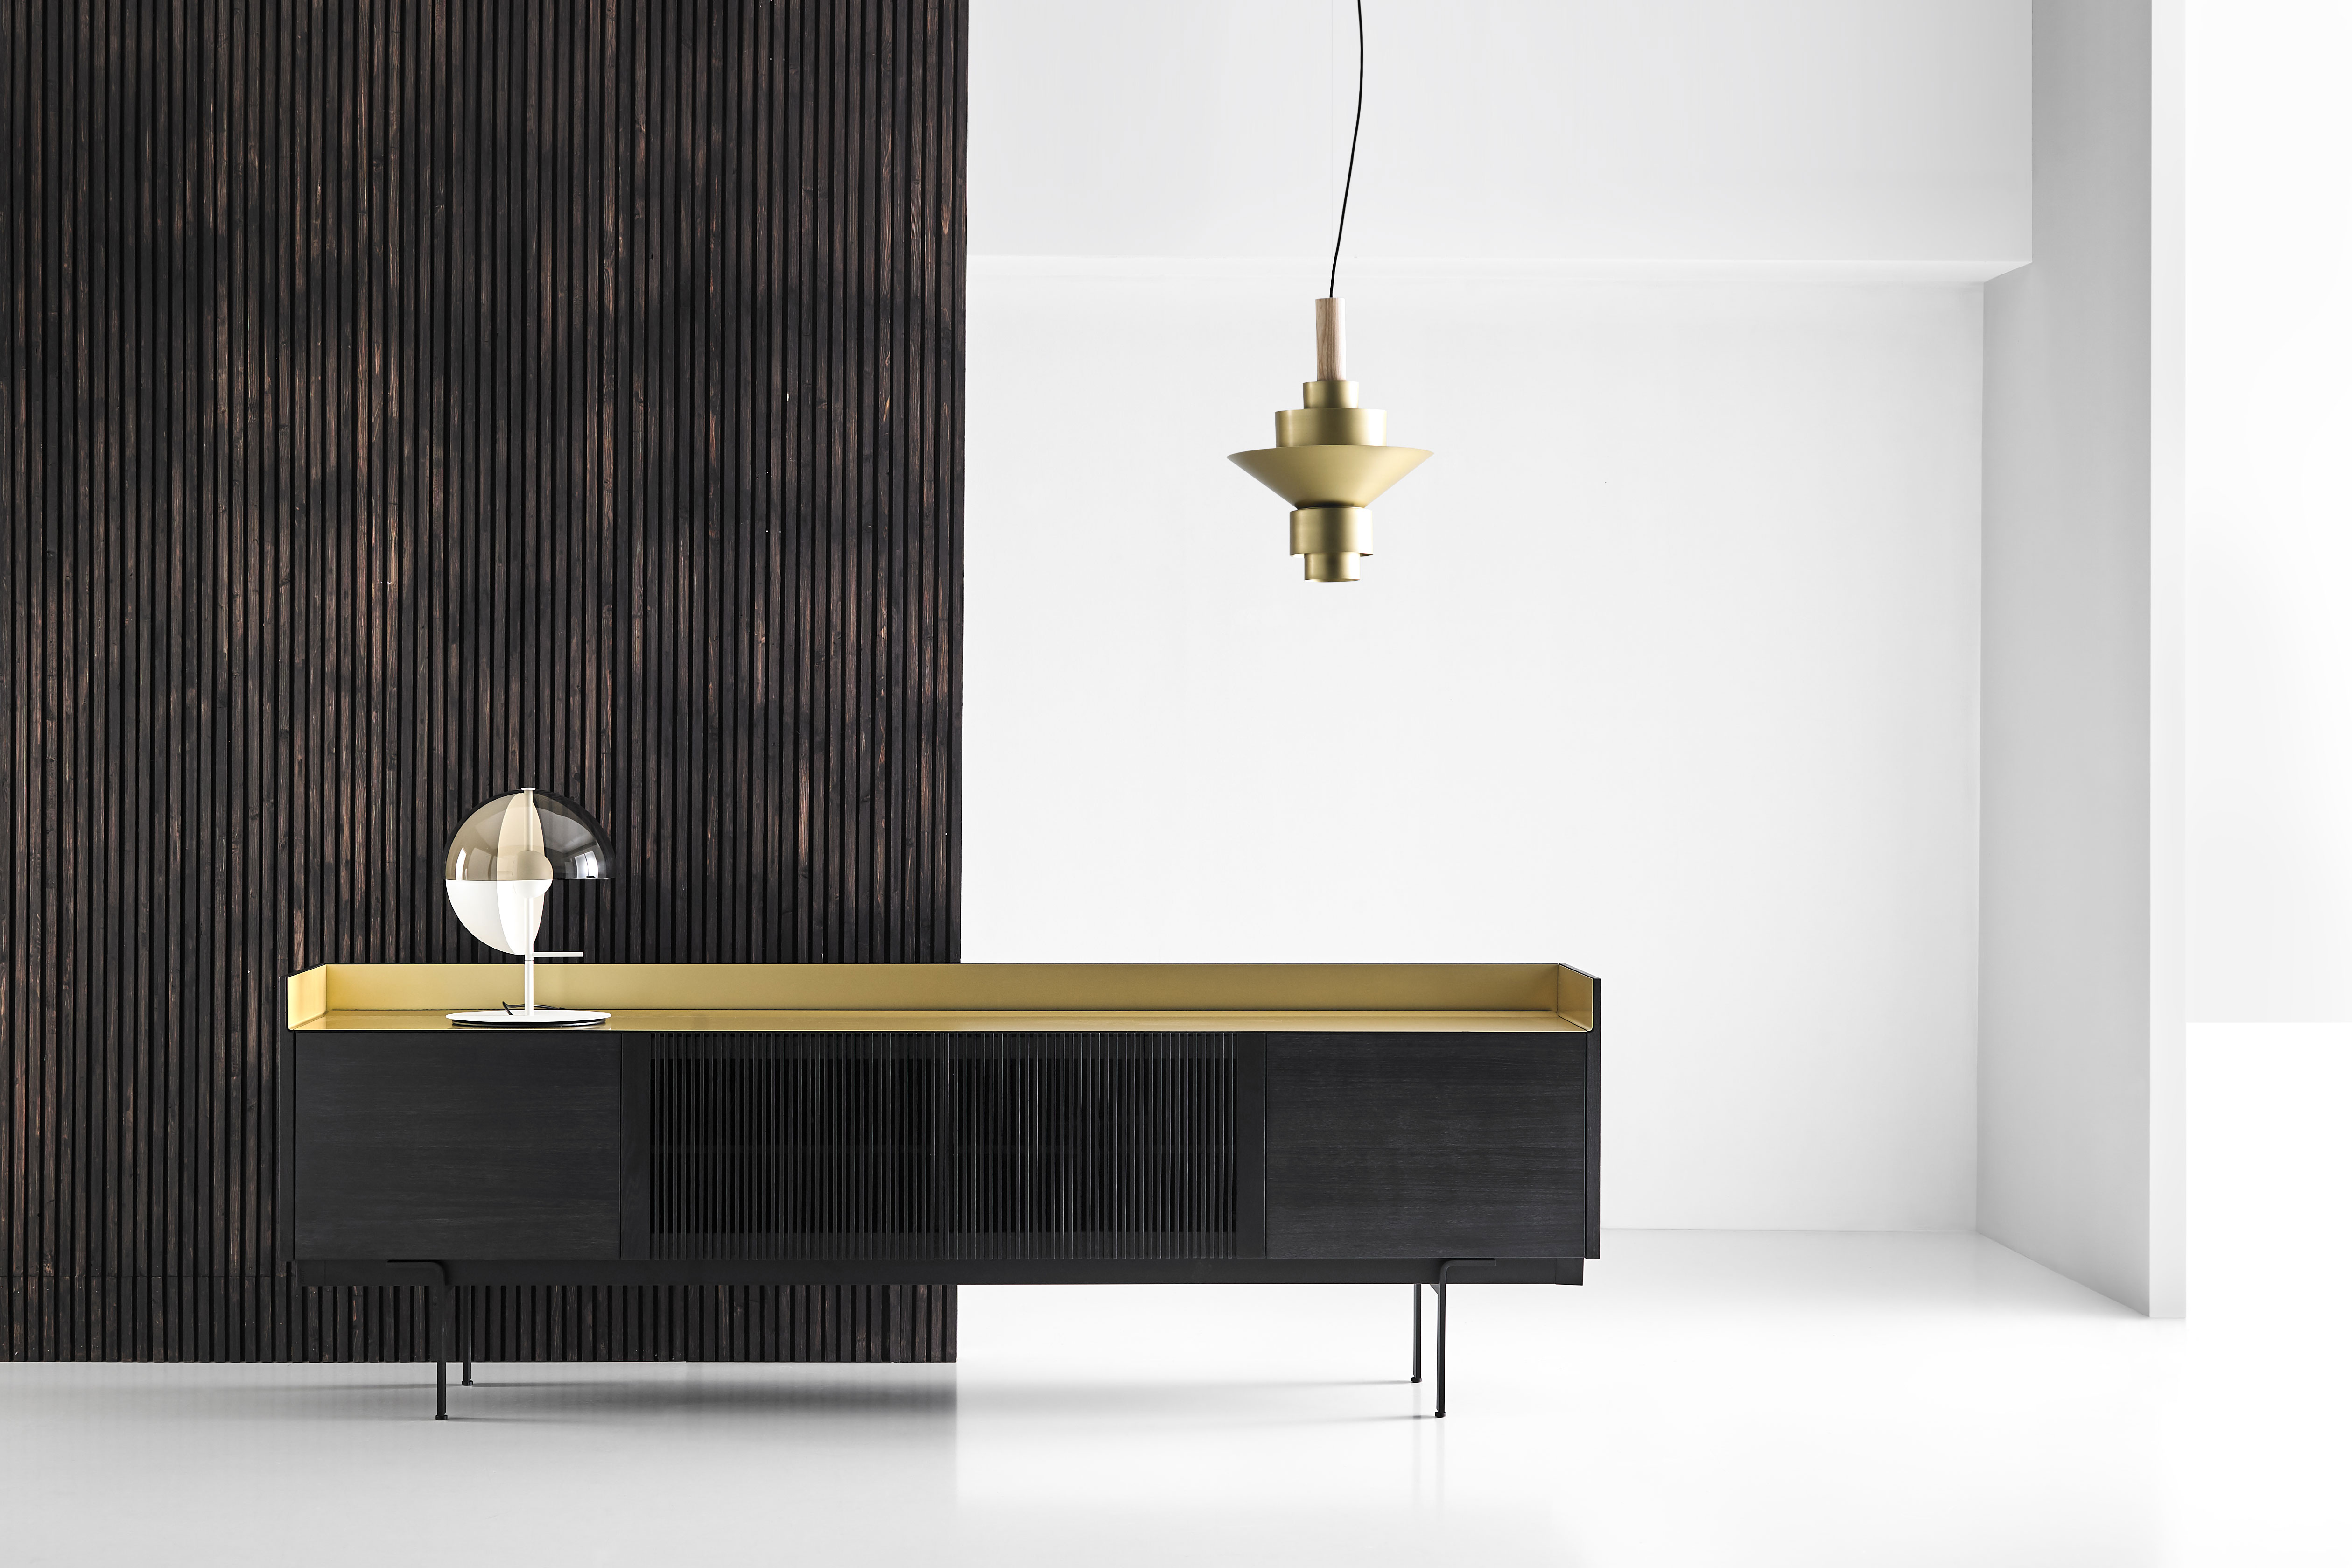 STOCKHOLM new sideboard compositions by Mario Ruiz for Punt Mobles. Photo: Courtesy of Punt Mobles.